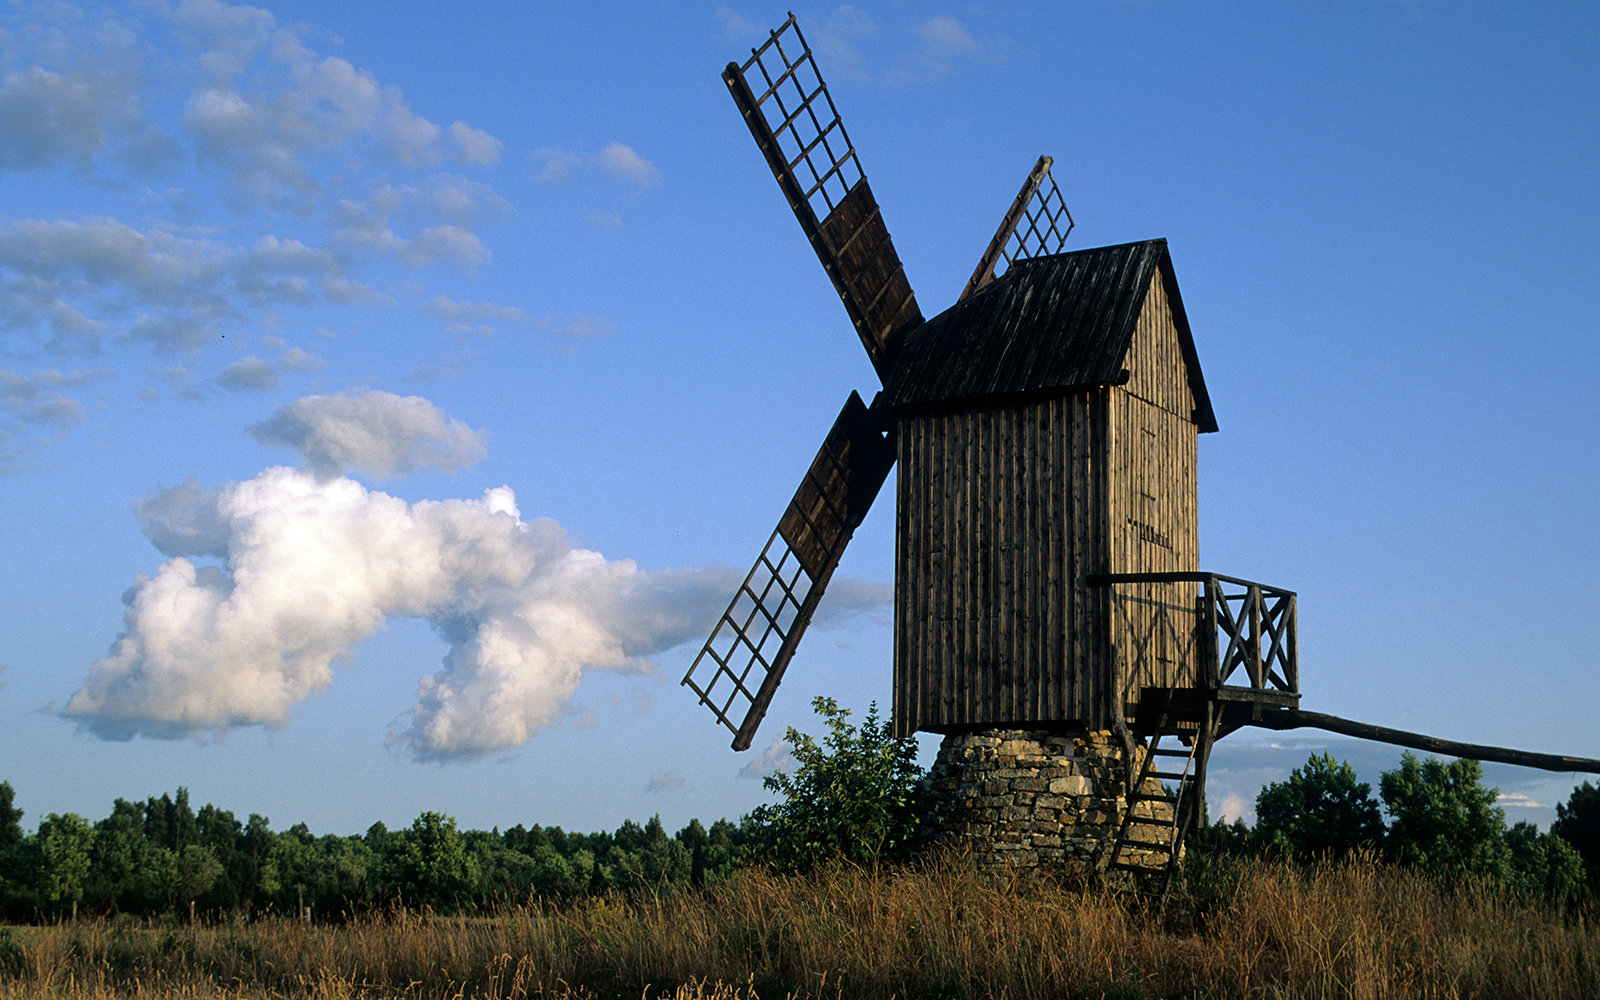 wooden windmill in Koguva, Estonia